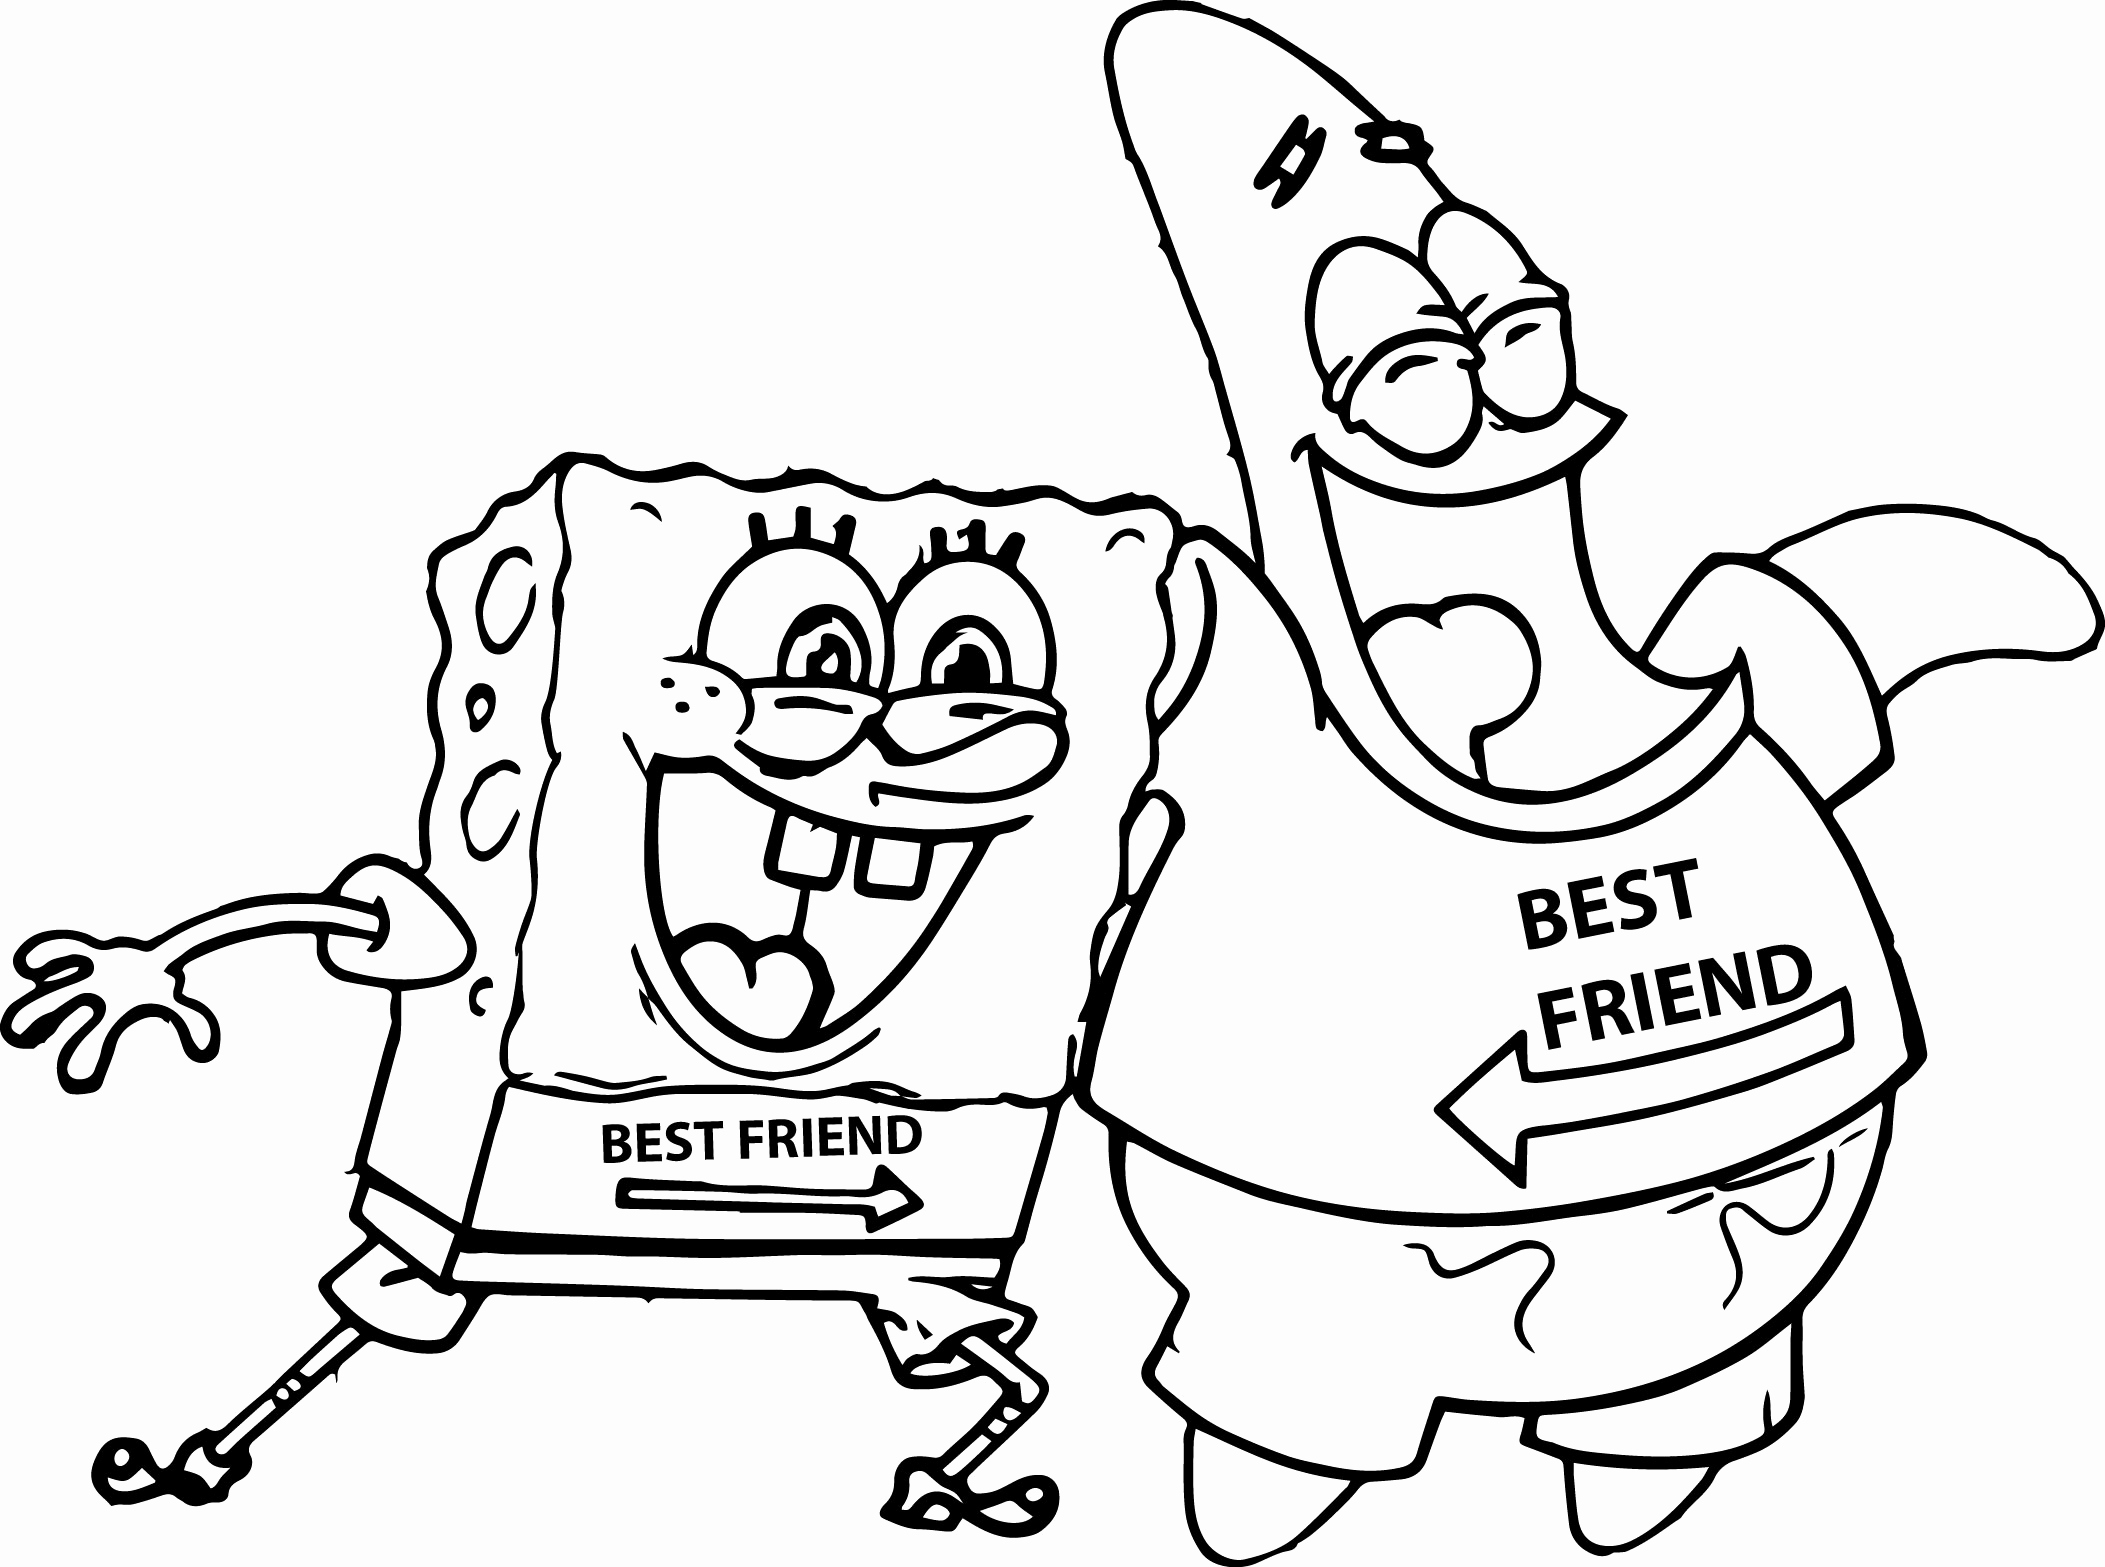 Spongebob Characters Coloring Pages At Getcolorings